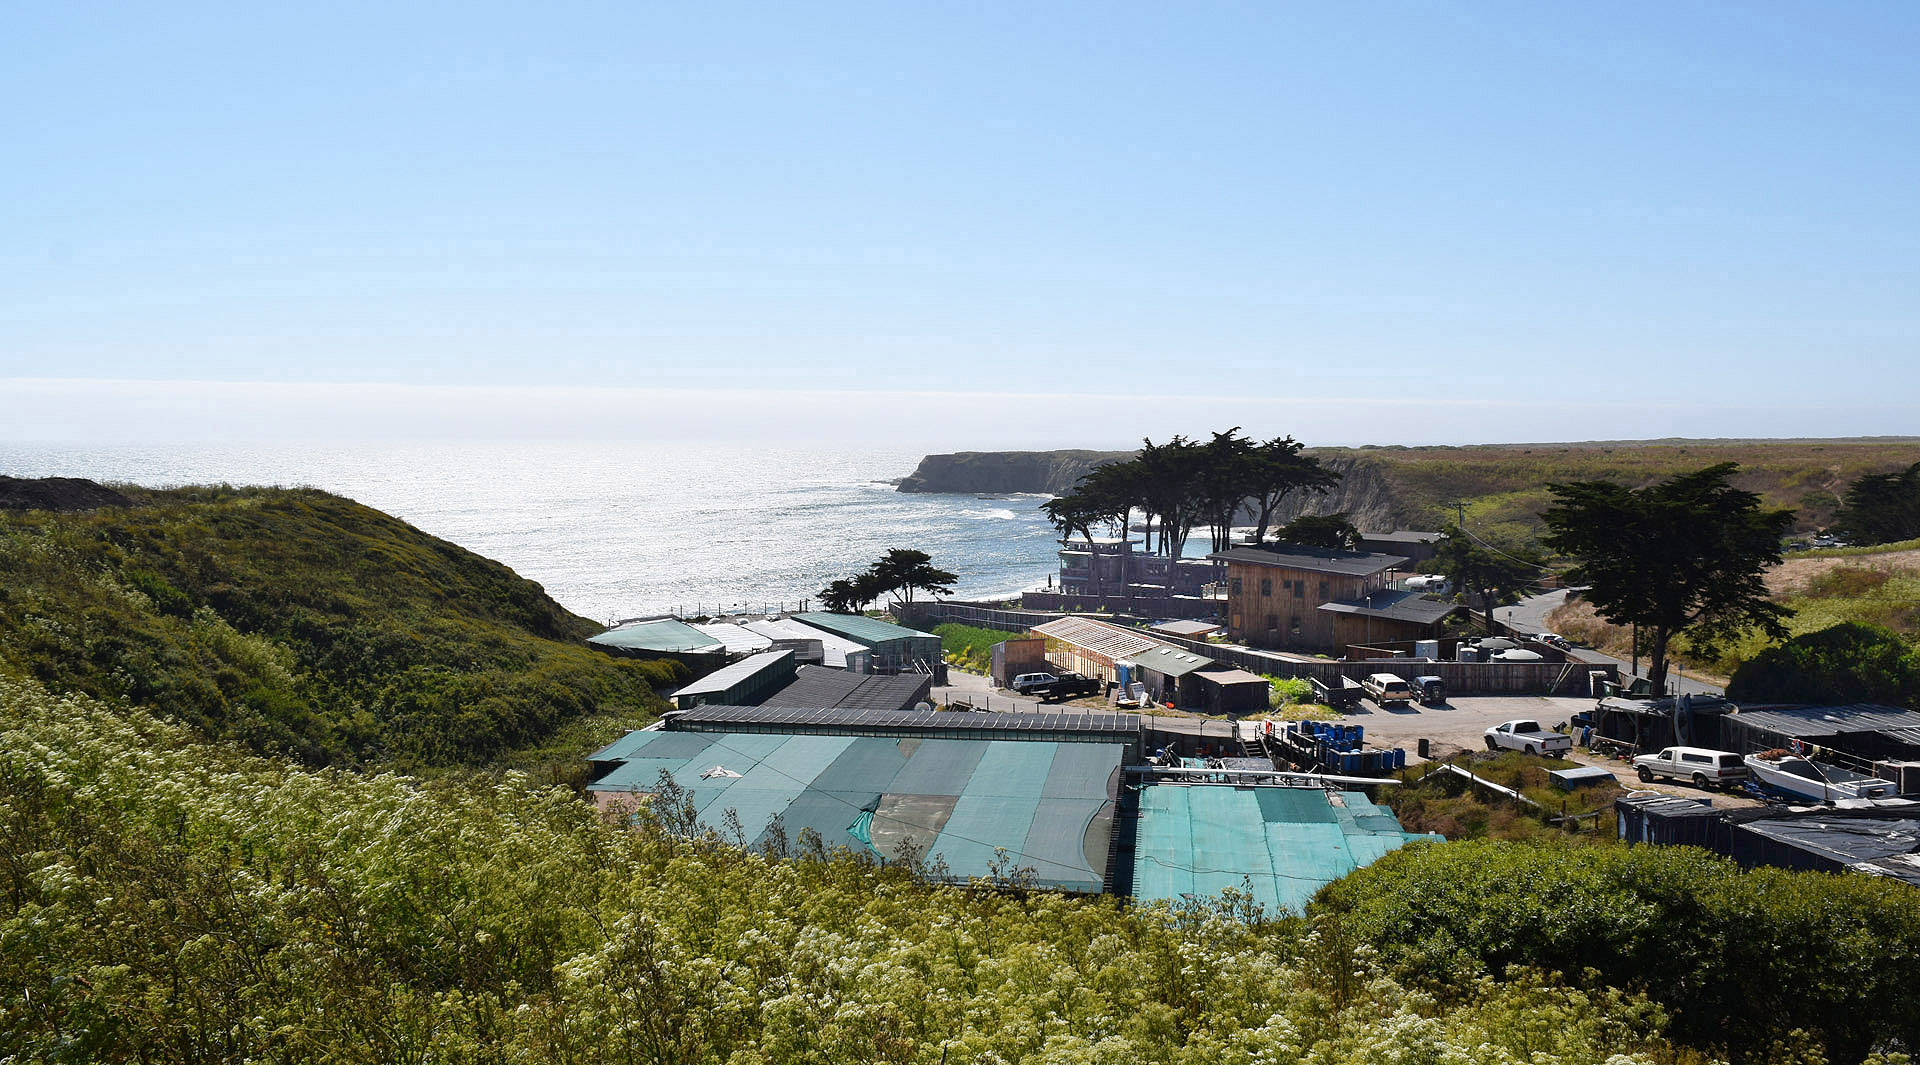 American Abalone Farms is located on a picturesque cove near Santa Cruz, where visitors can buy and consume abalone and other local seafood on Saturdays.